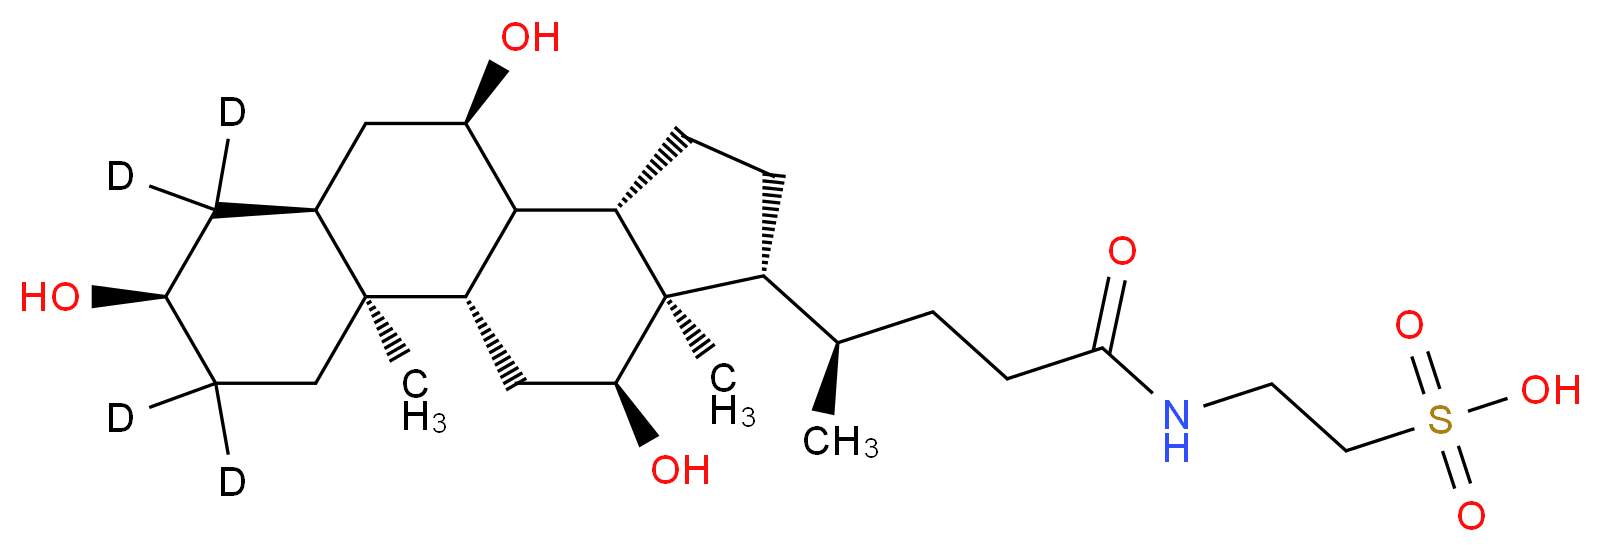 Taurocholic Acid-d4DISCONTINUED. See T008852_Molecular_structure_CAS_252030-90-3)